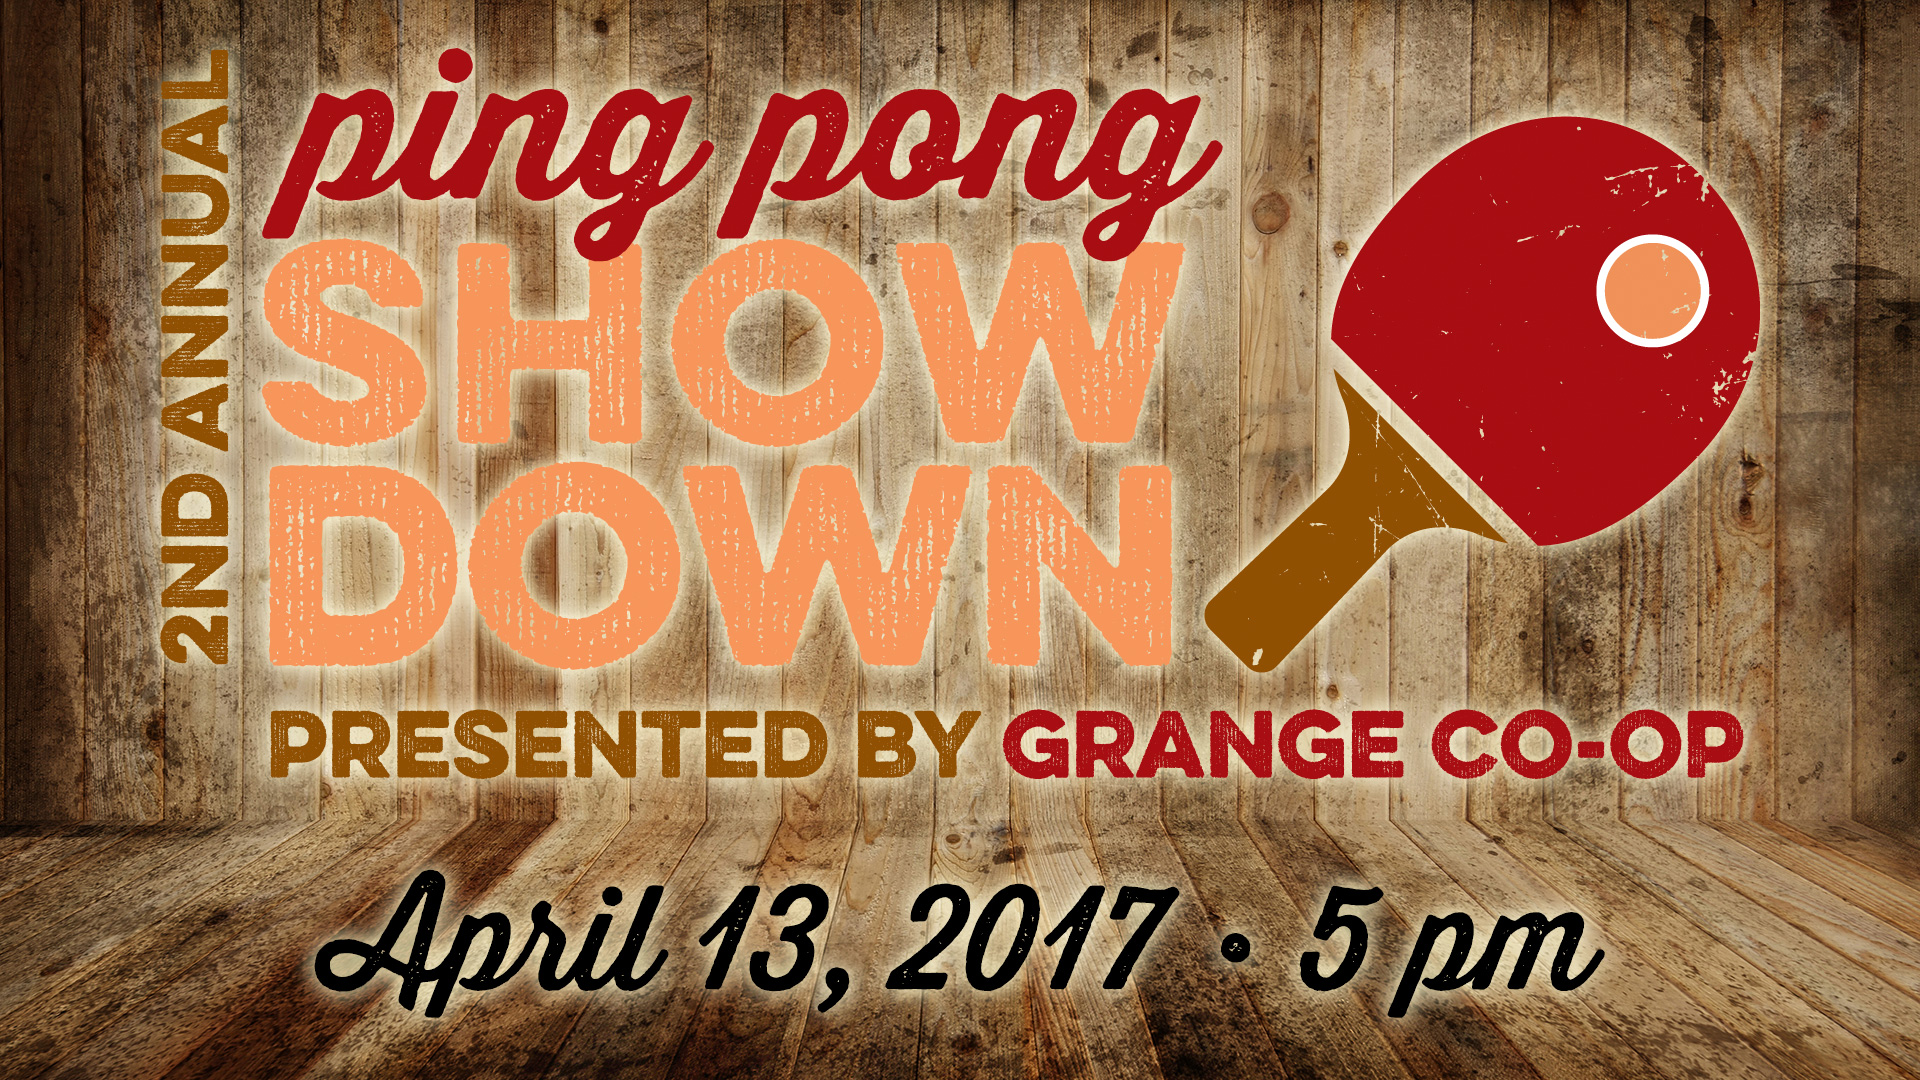 Ping Pong Showdown, Facebook event graphic design, March 2017